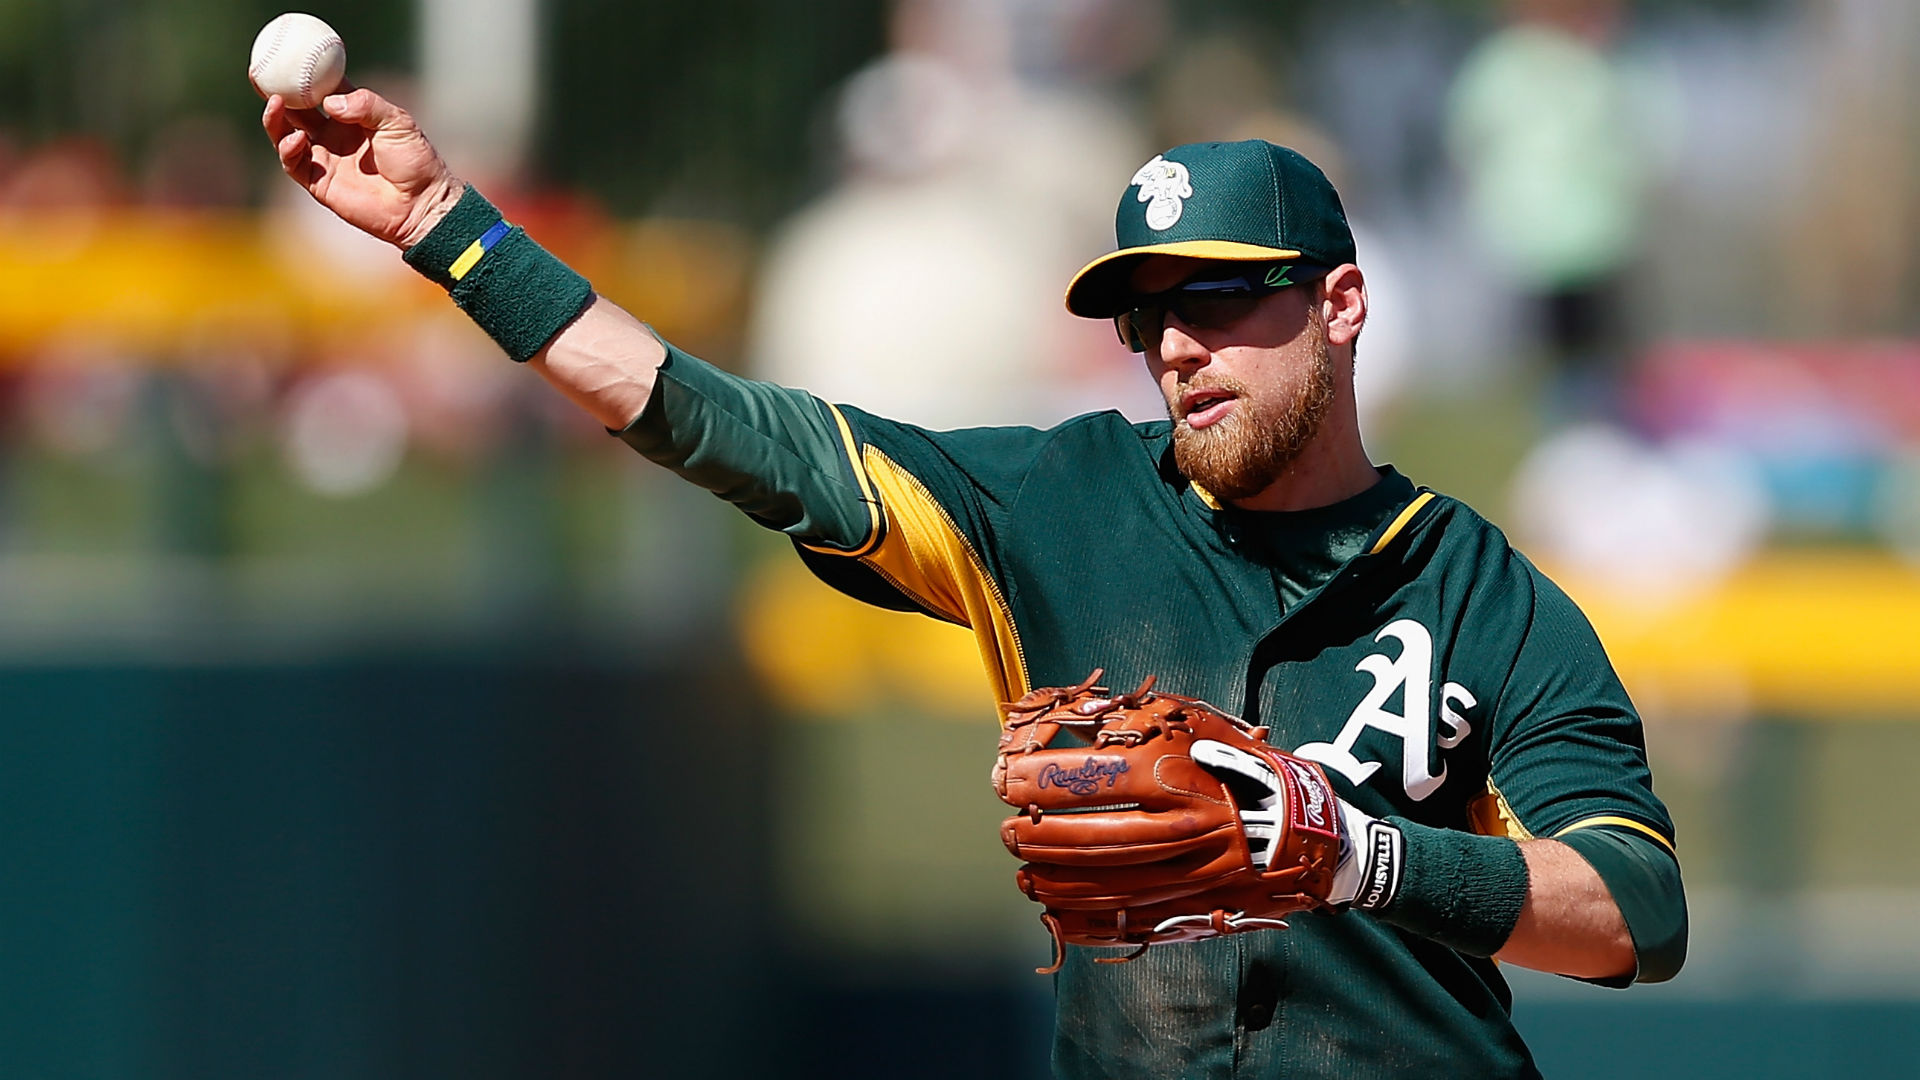 Athletics' Ben Zobrist on track to return from disabled list Monday